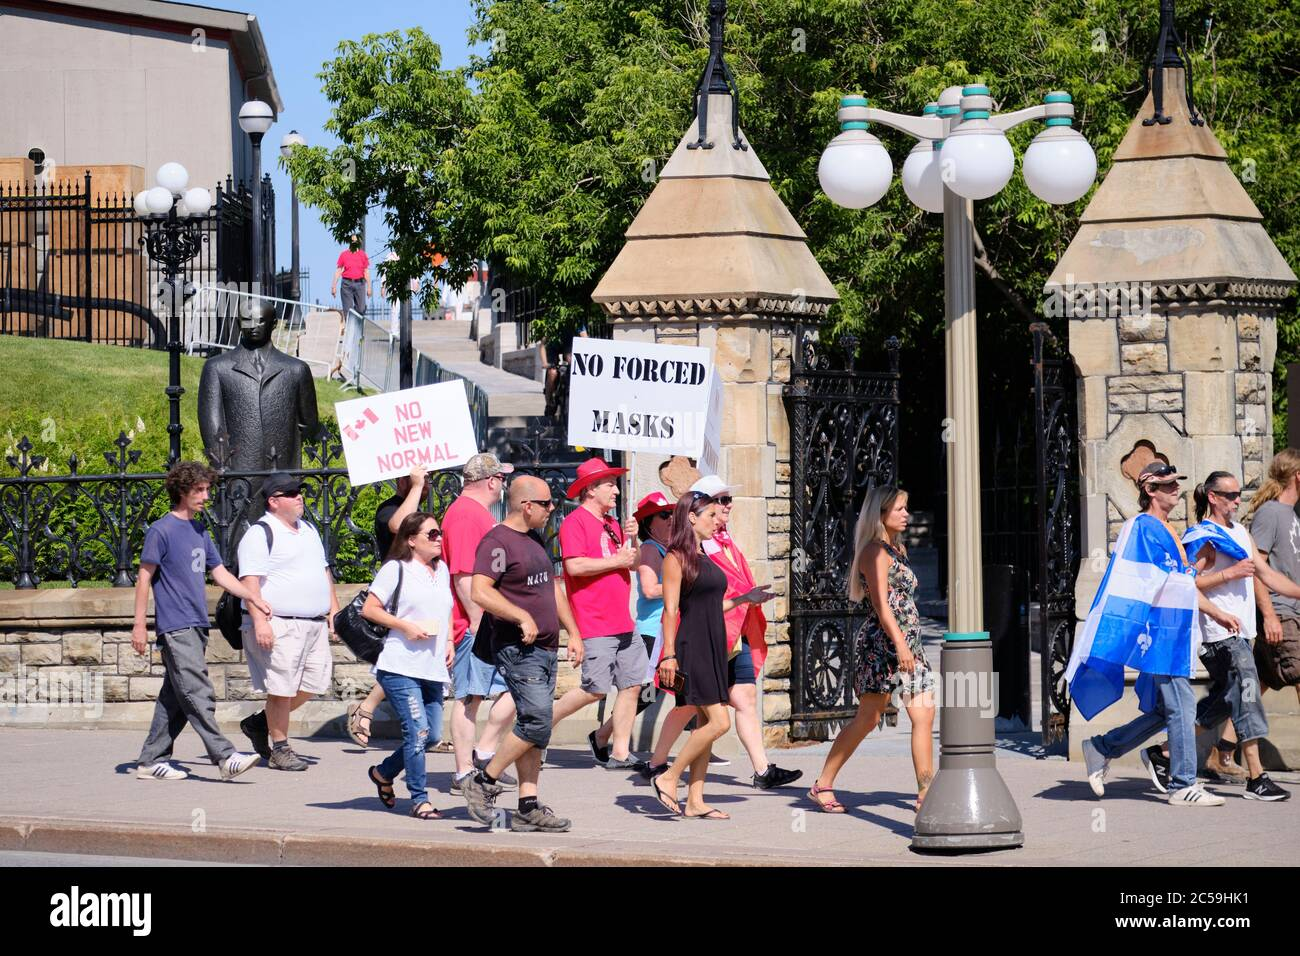 ottawa-canada-july-1st-2020-crowd-of-a-few-hundreds-rallied-in-front-of-the-canadian-parliament-on-canada-day-to-show-their-displeasure-with-the-trudeau-government-the-complaints-ranged-from-a-variety-of-subjects-but-mainly-focus-on-the-current-covid-19-crisis-credit-meanderingemualamy-live-news-2C59HK1.jpg